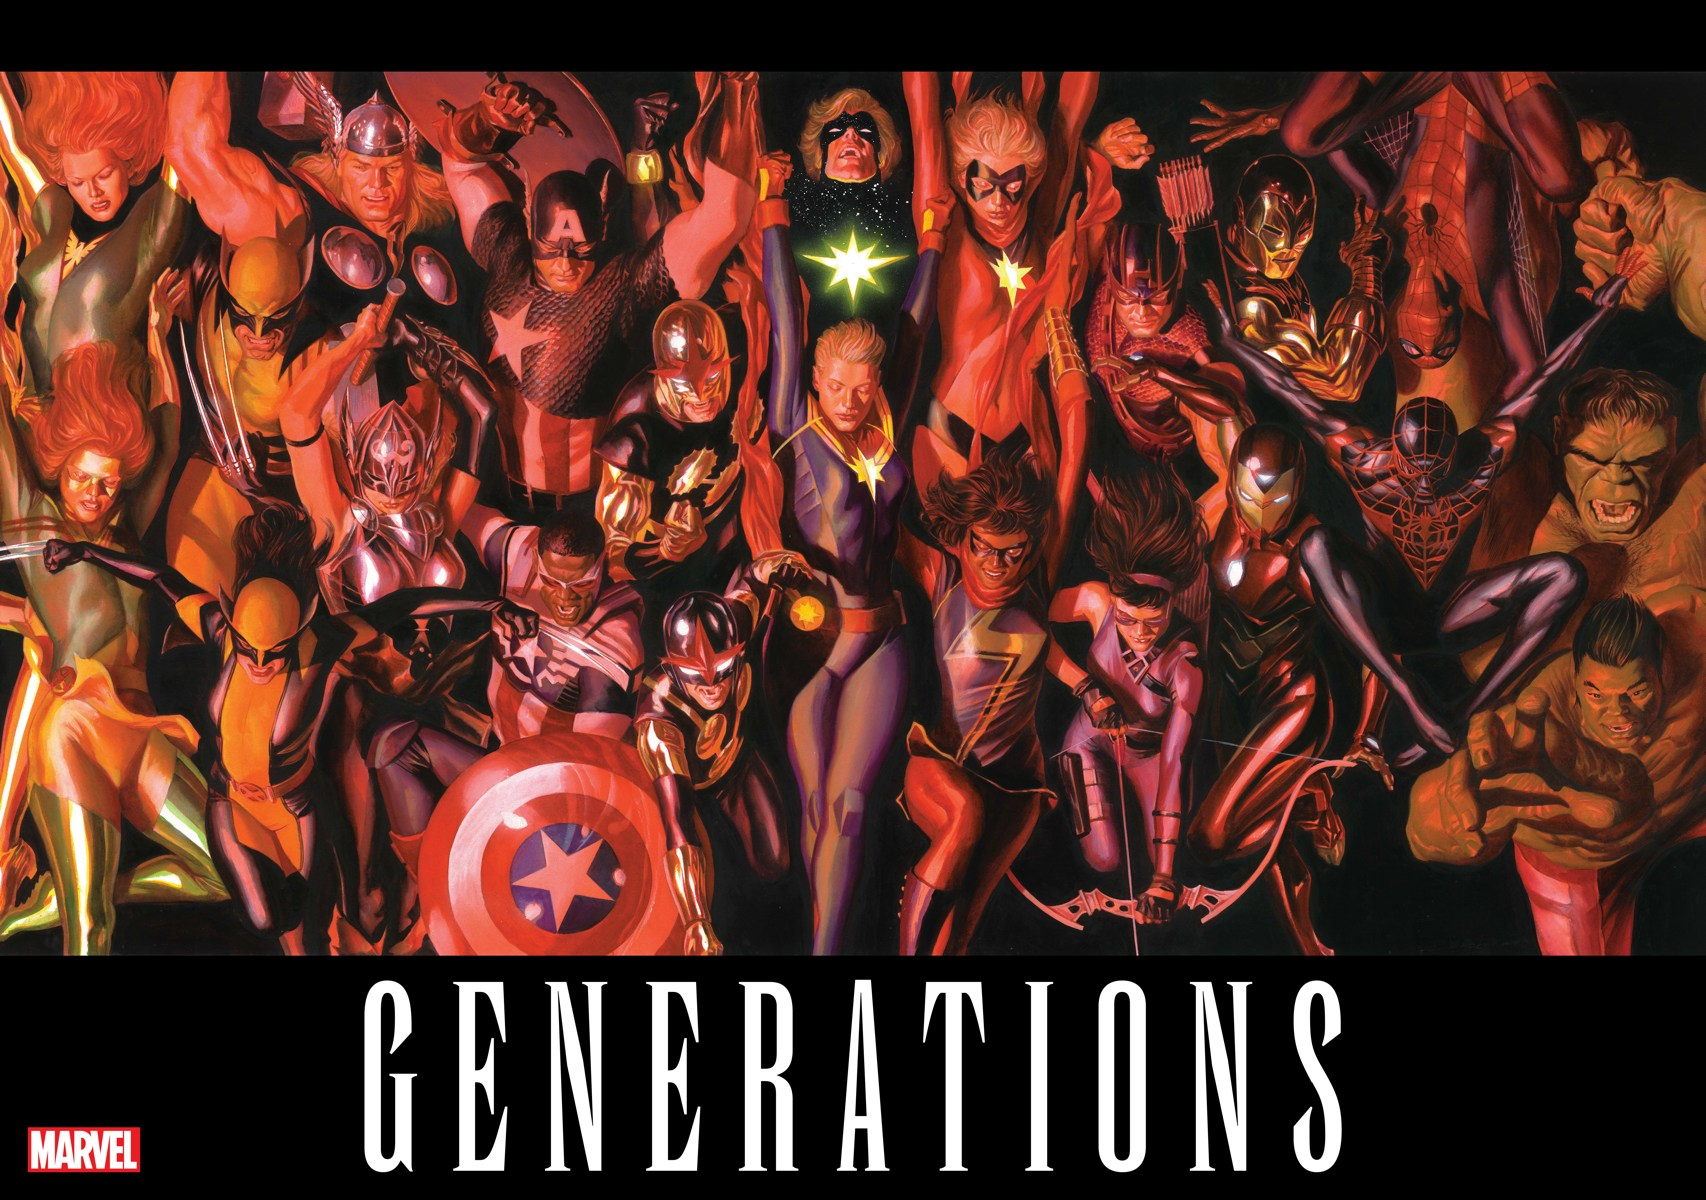 alex-ross-Generations-embed